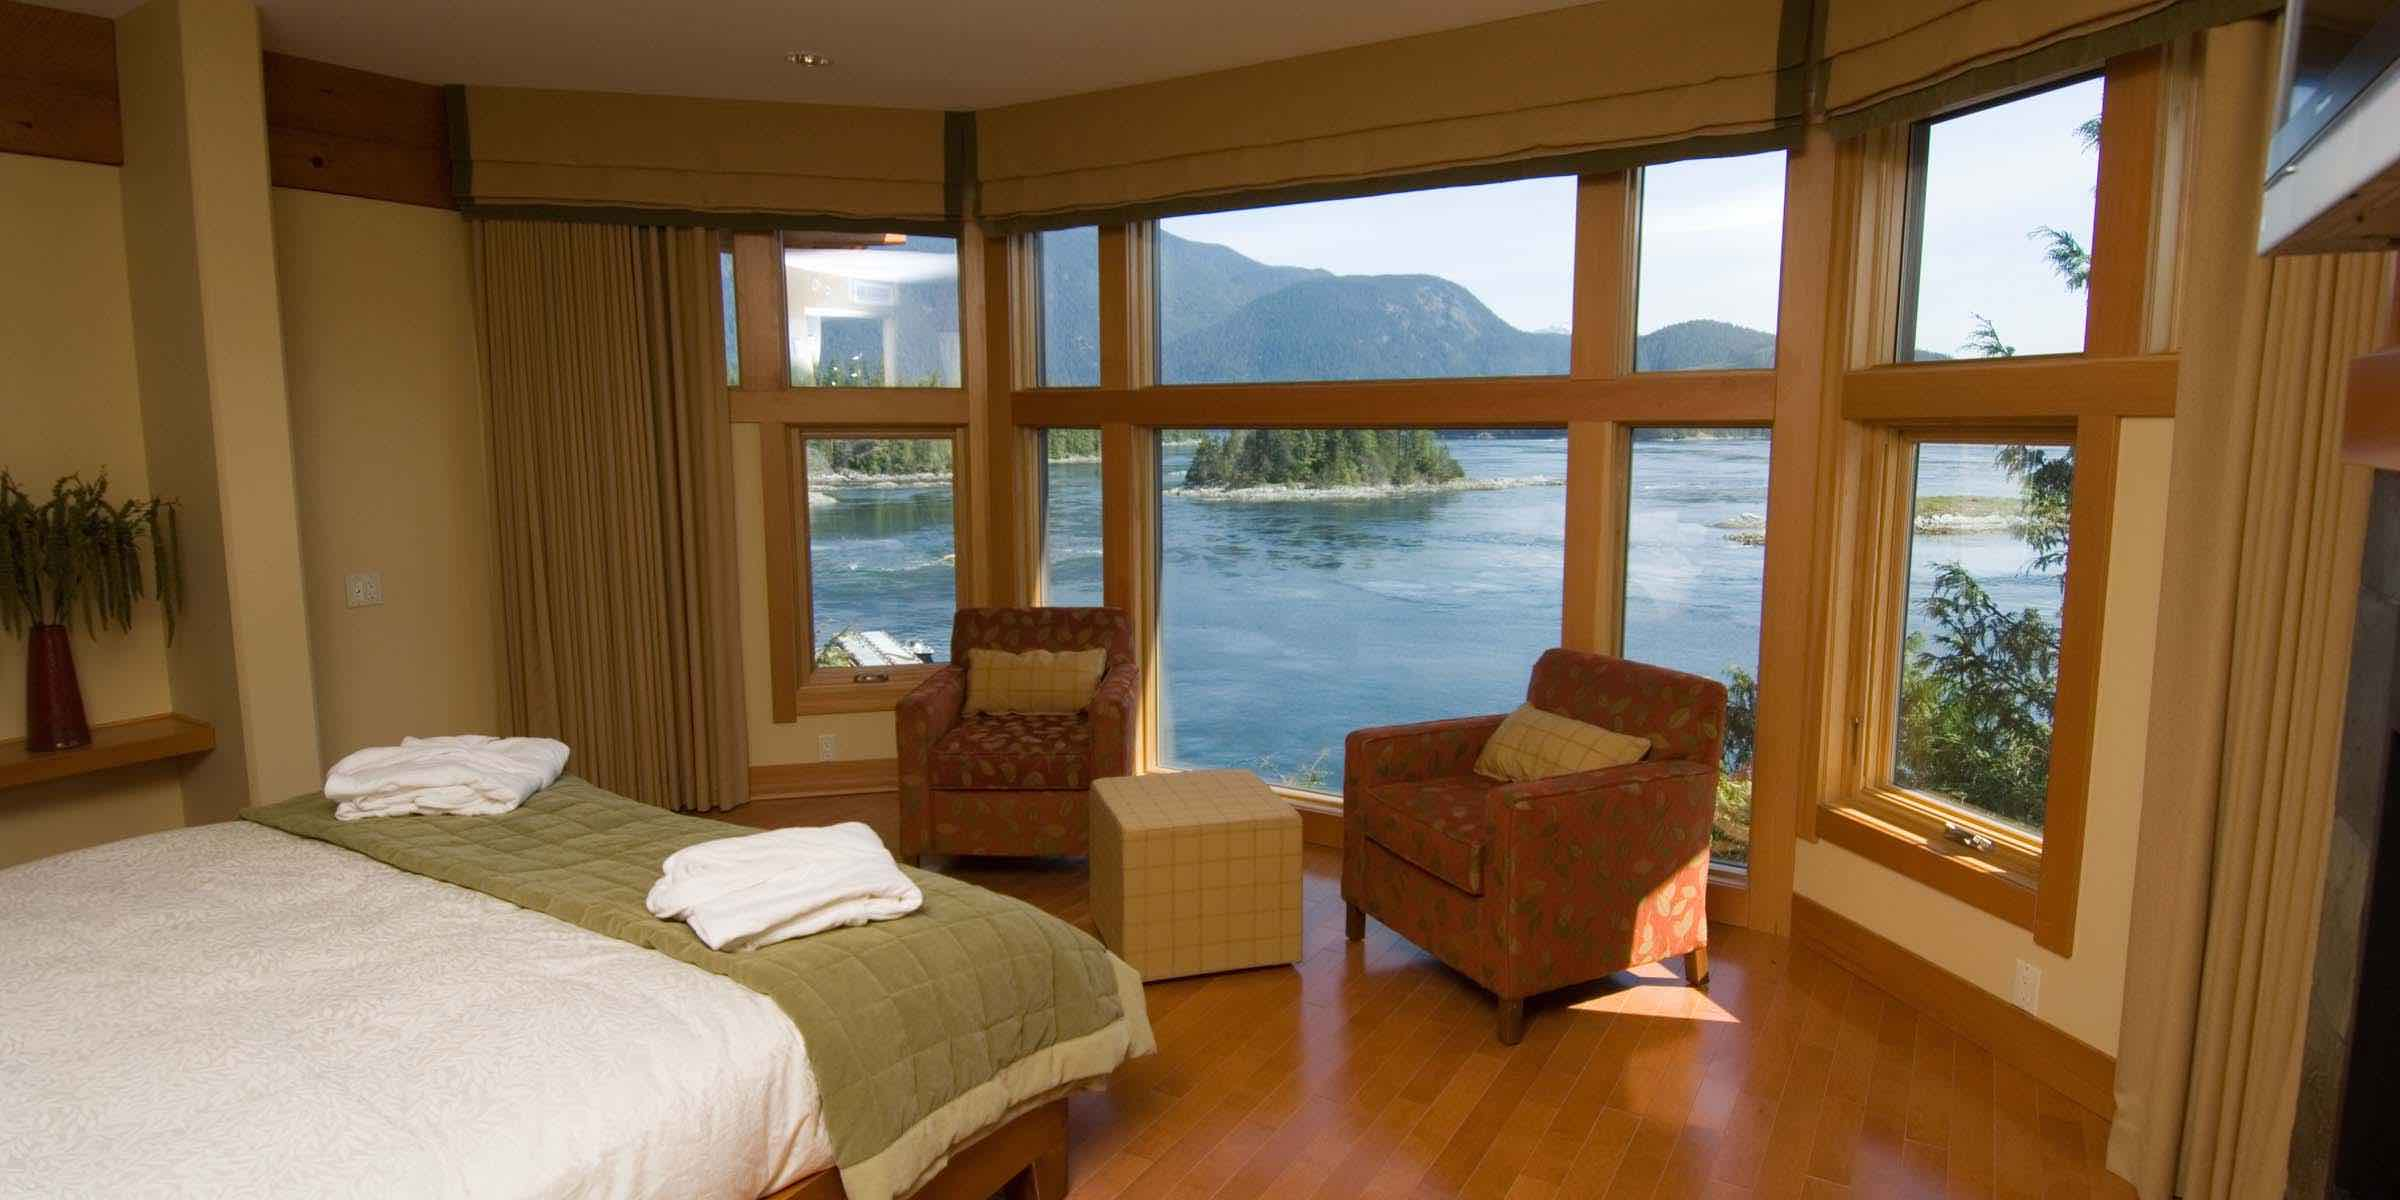 View through the window of a Sonora resort bedroom toward the ocean and mountains